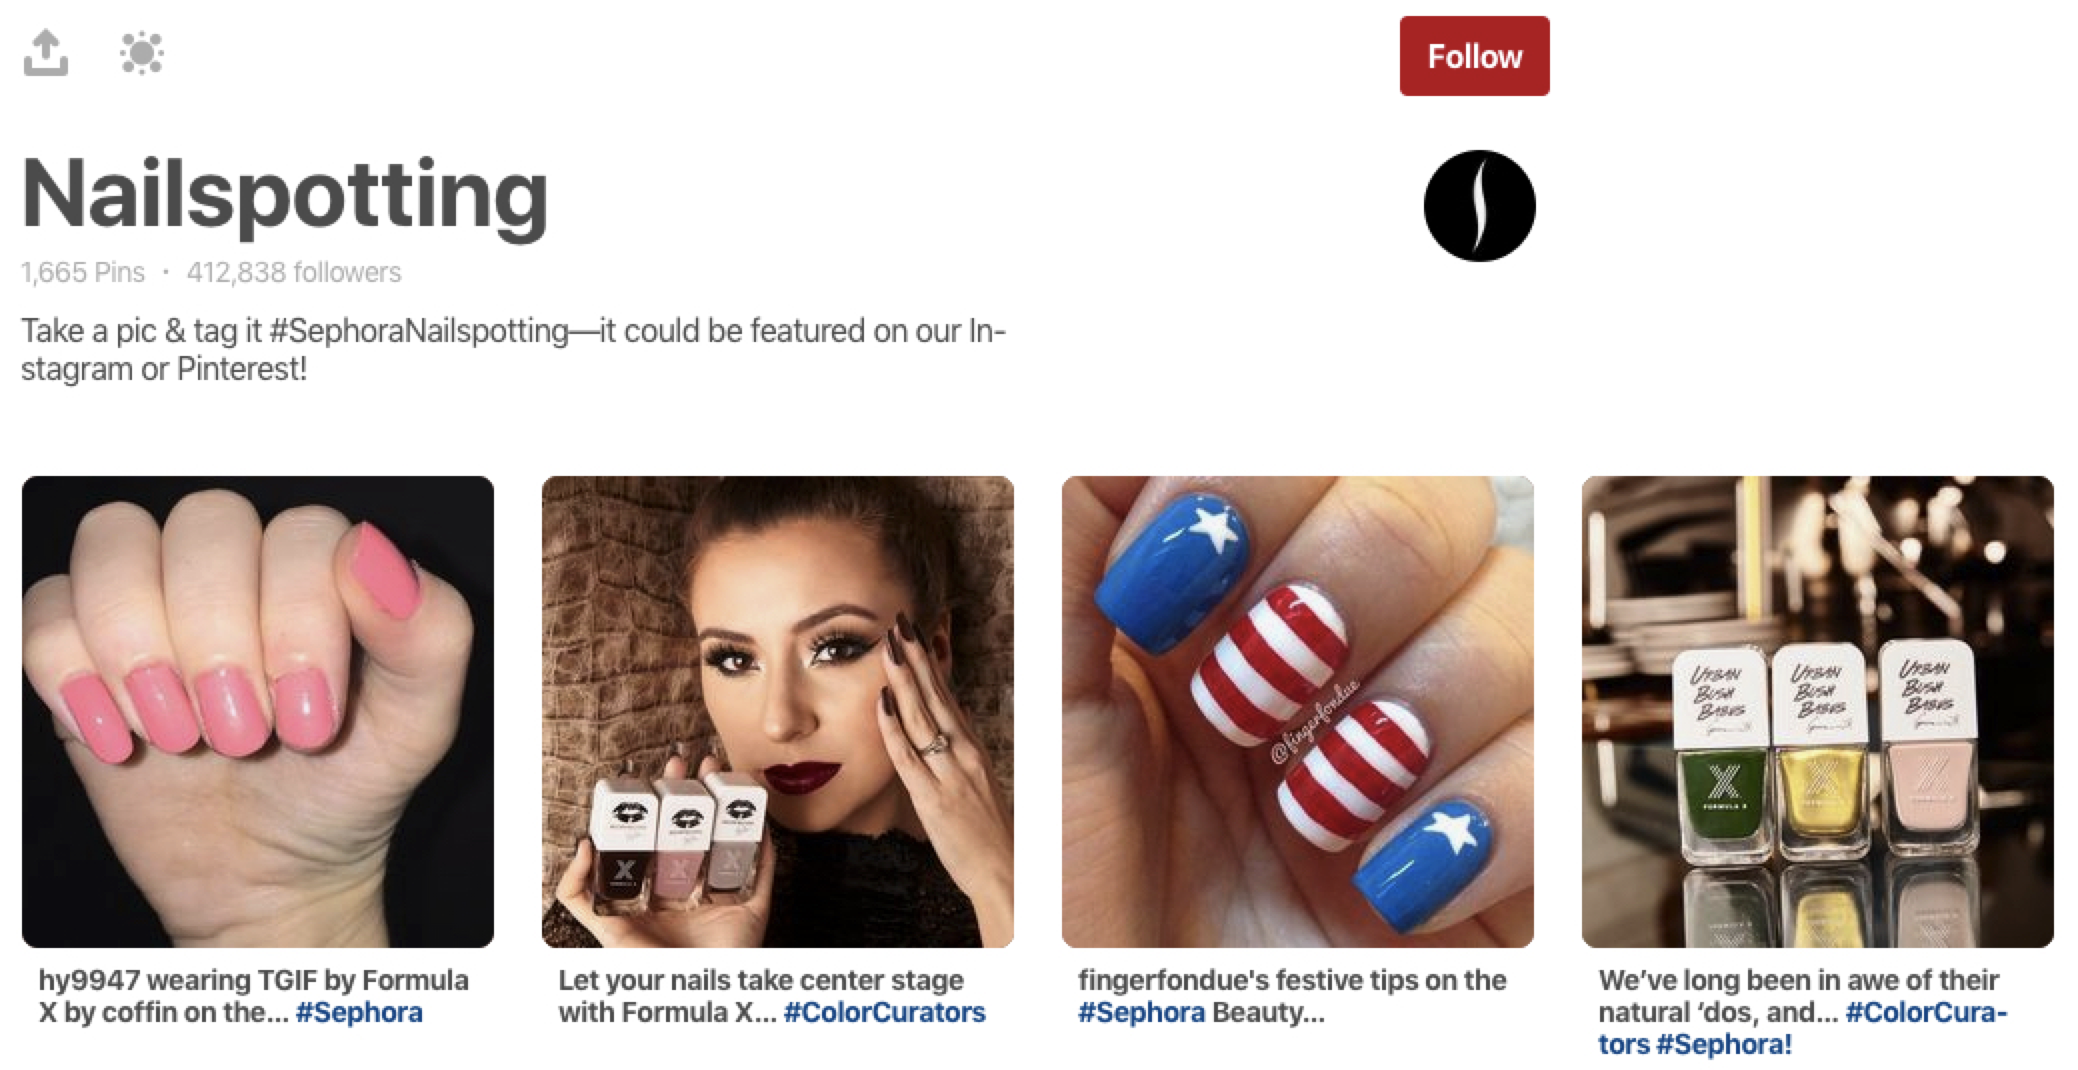 Sephora's Nailspotting board